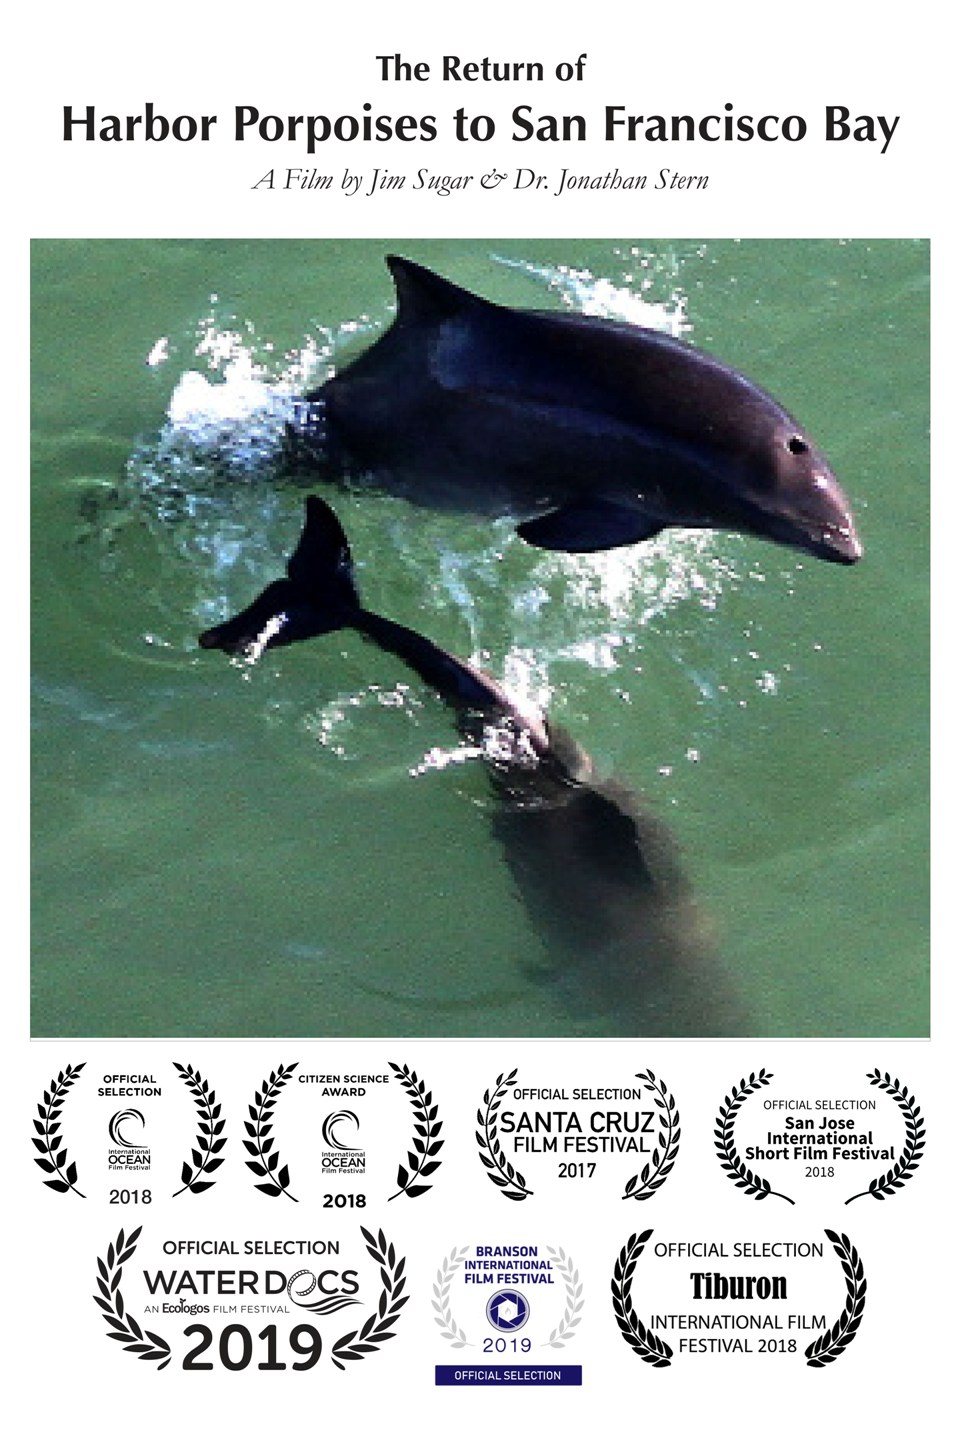 Harbour Porpoise Poster with WD laurels & others-downsized to 10%.jpg